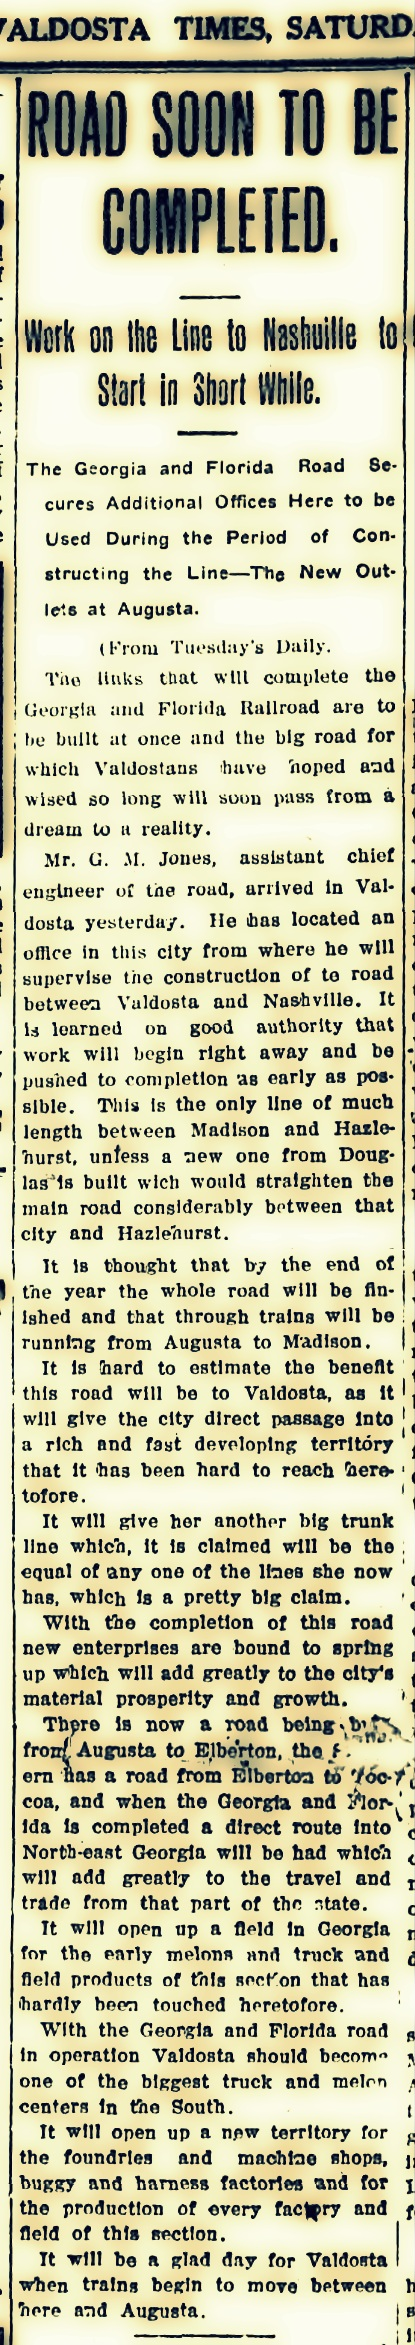 Surveying the route of the Georgia and Florida Railroad. Valdosta Daily Times, March 7, 1908